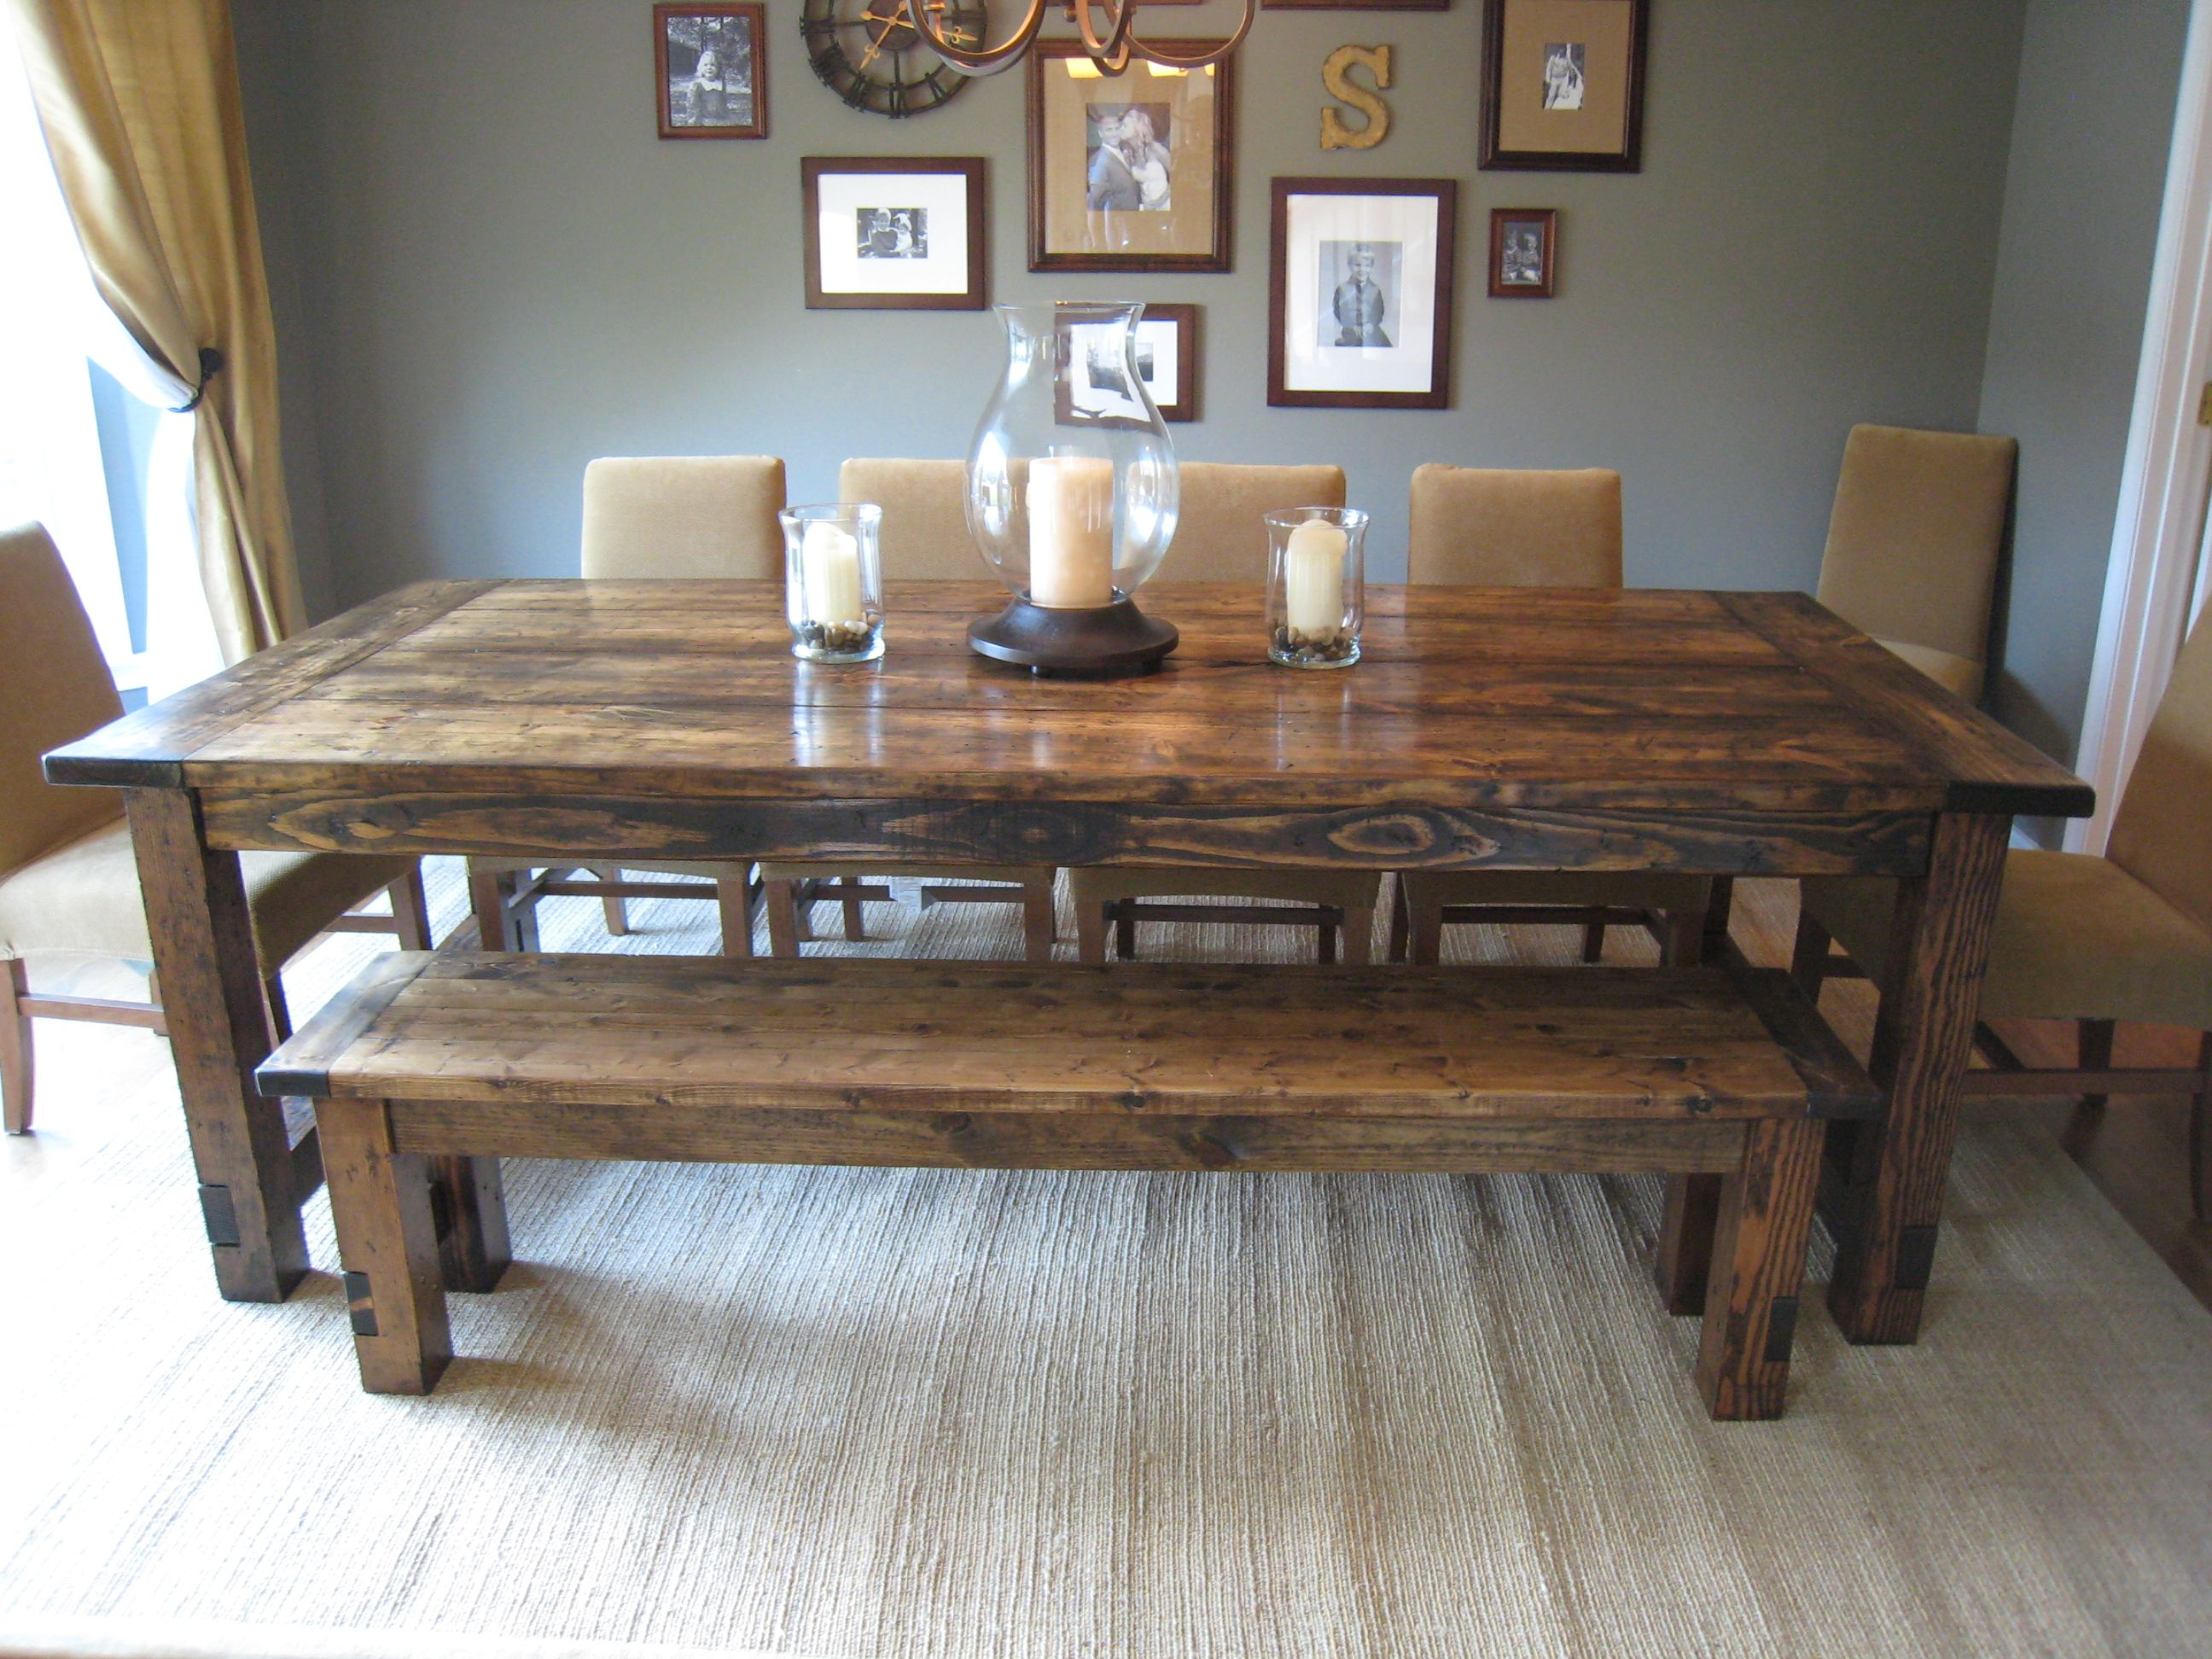 dinning table farm style kitchen table 20 best ideas about Dinning Table on Pinterest Dining room tables Kitchen tables and Contemporary neutral dining room